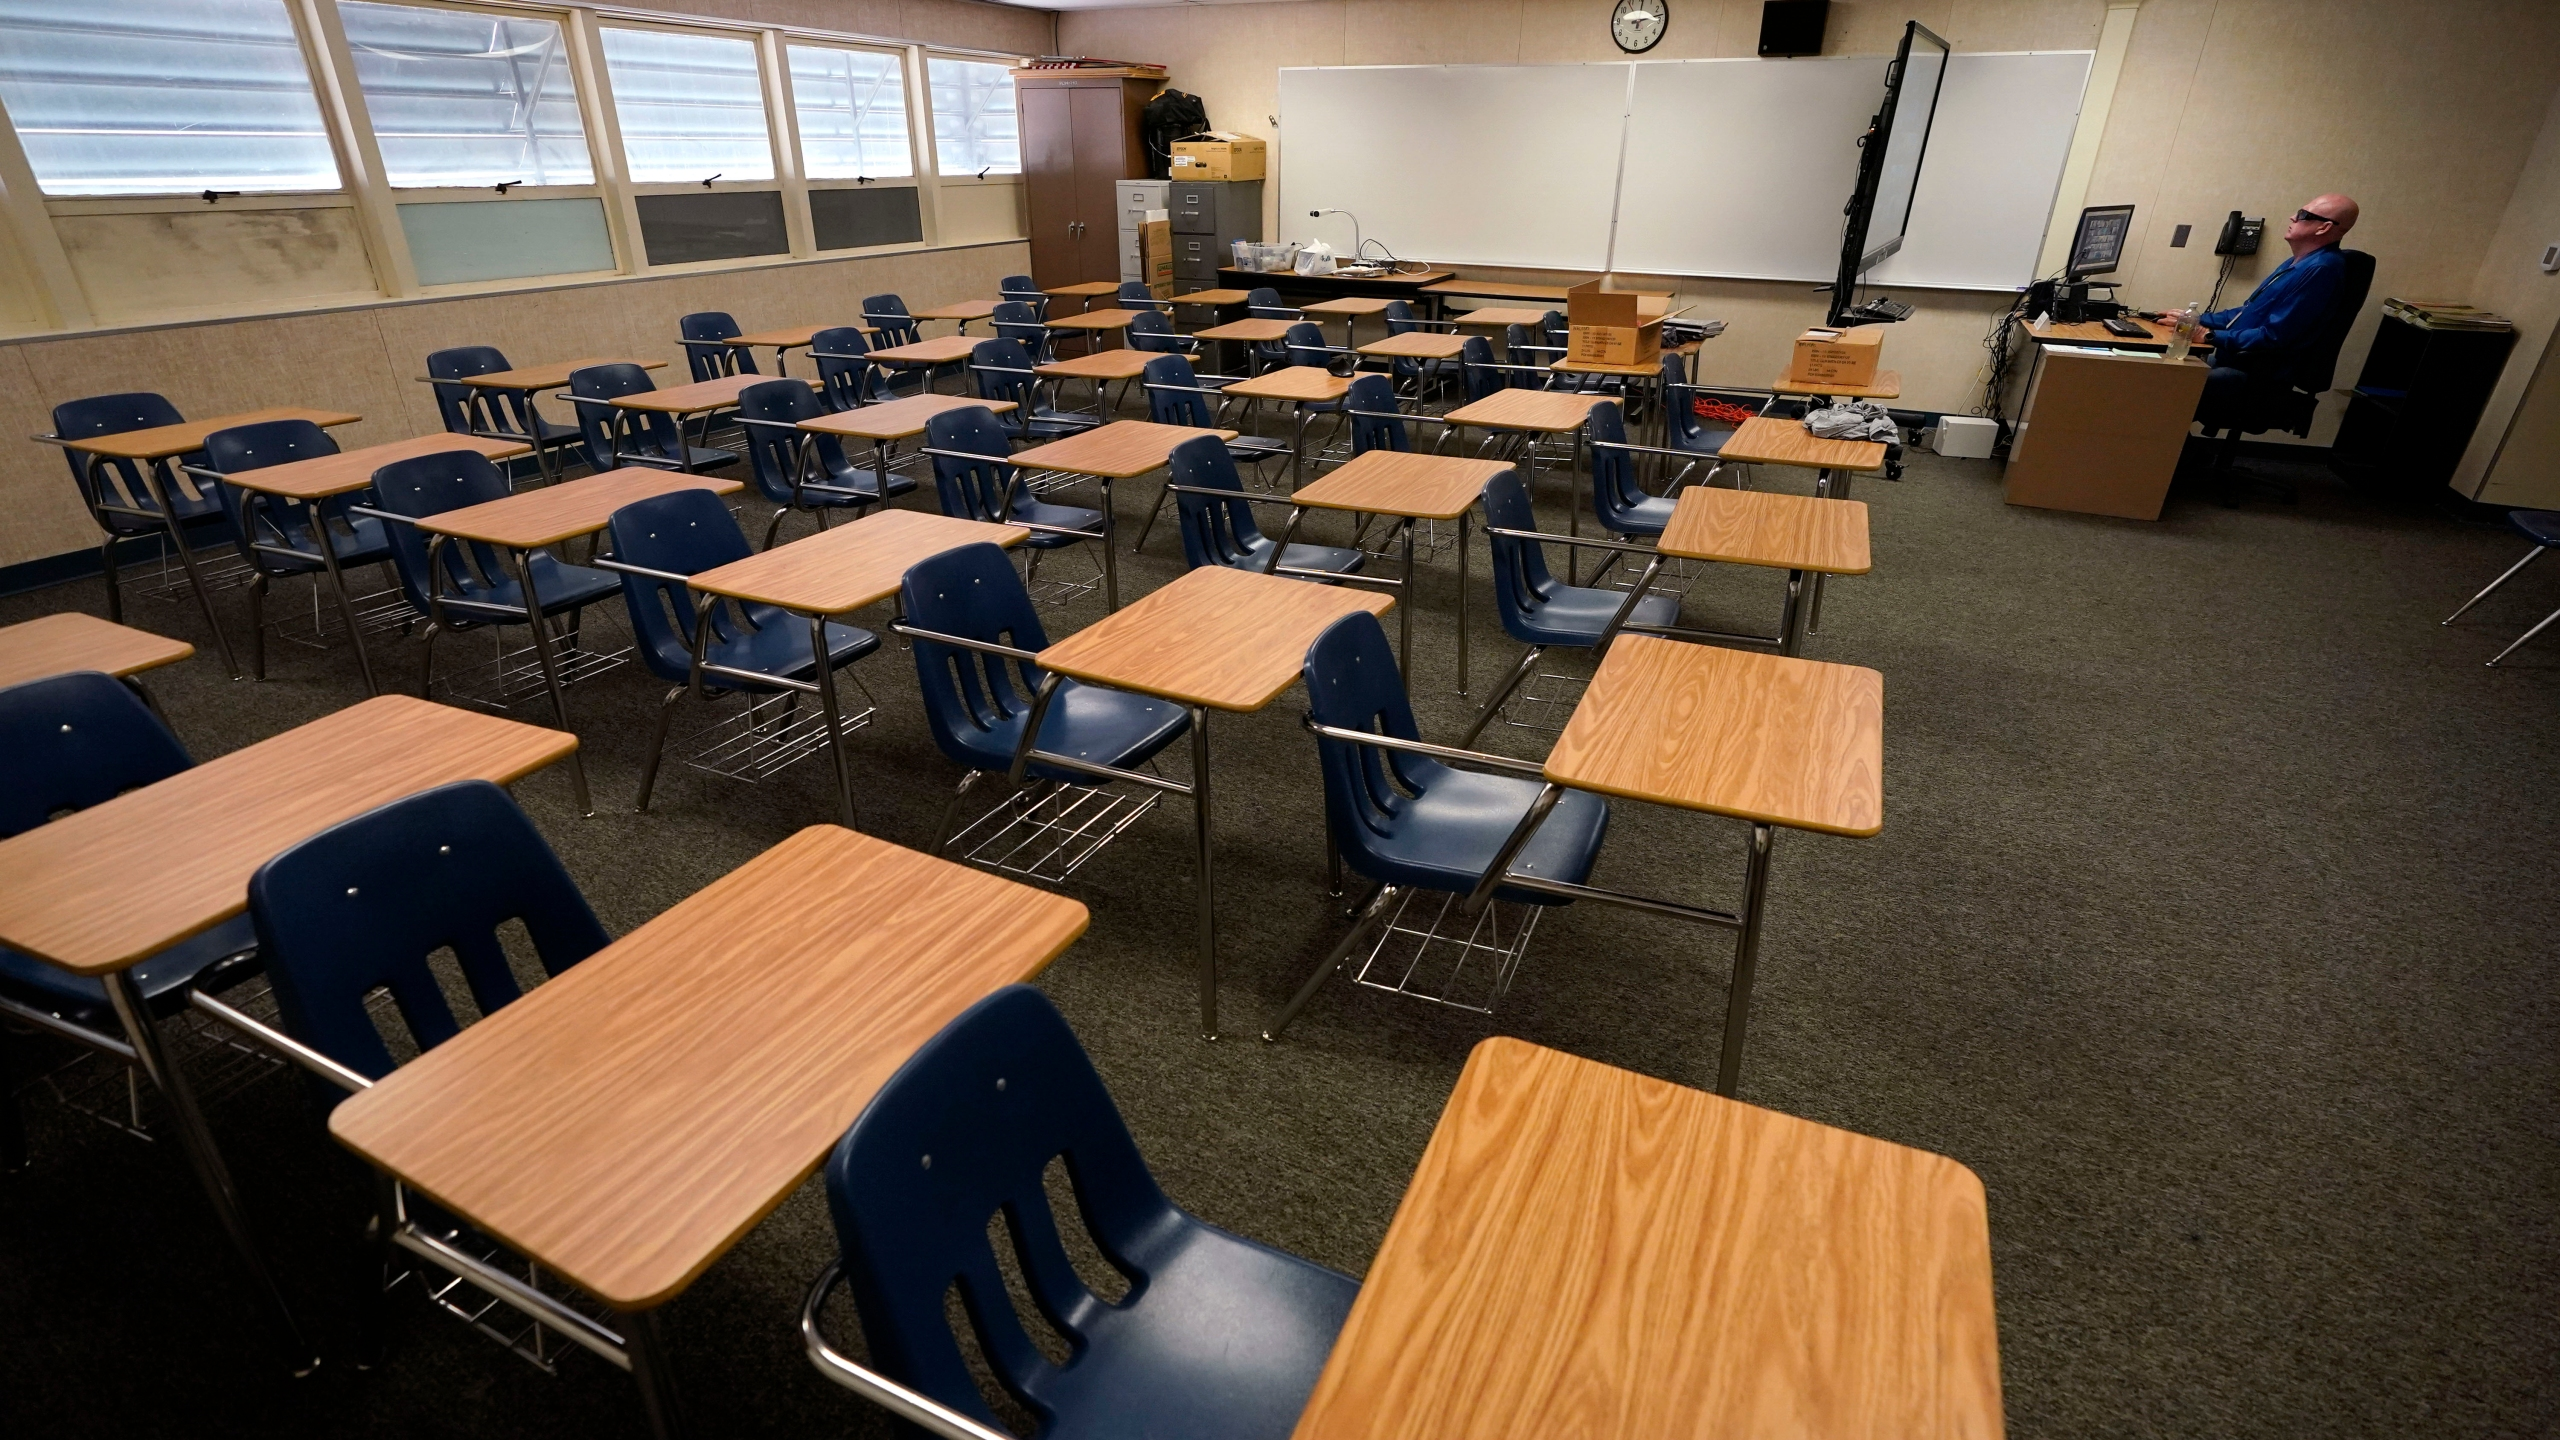 Math teacher Doug Walters sits among empty desks as he takes part in a video conference with other teachers to prepare for at-home learning at Twentynine Palms Junior High School in Twentynine Palms on Aug. 18, 2020. (Gregory Bull / Associated Press)